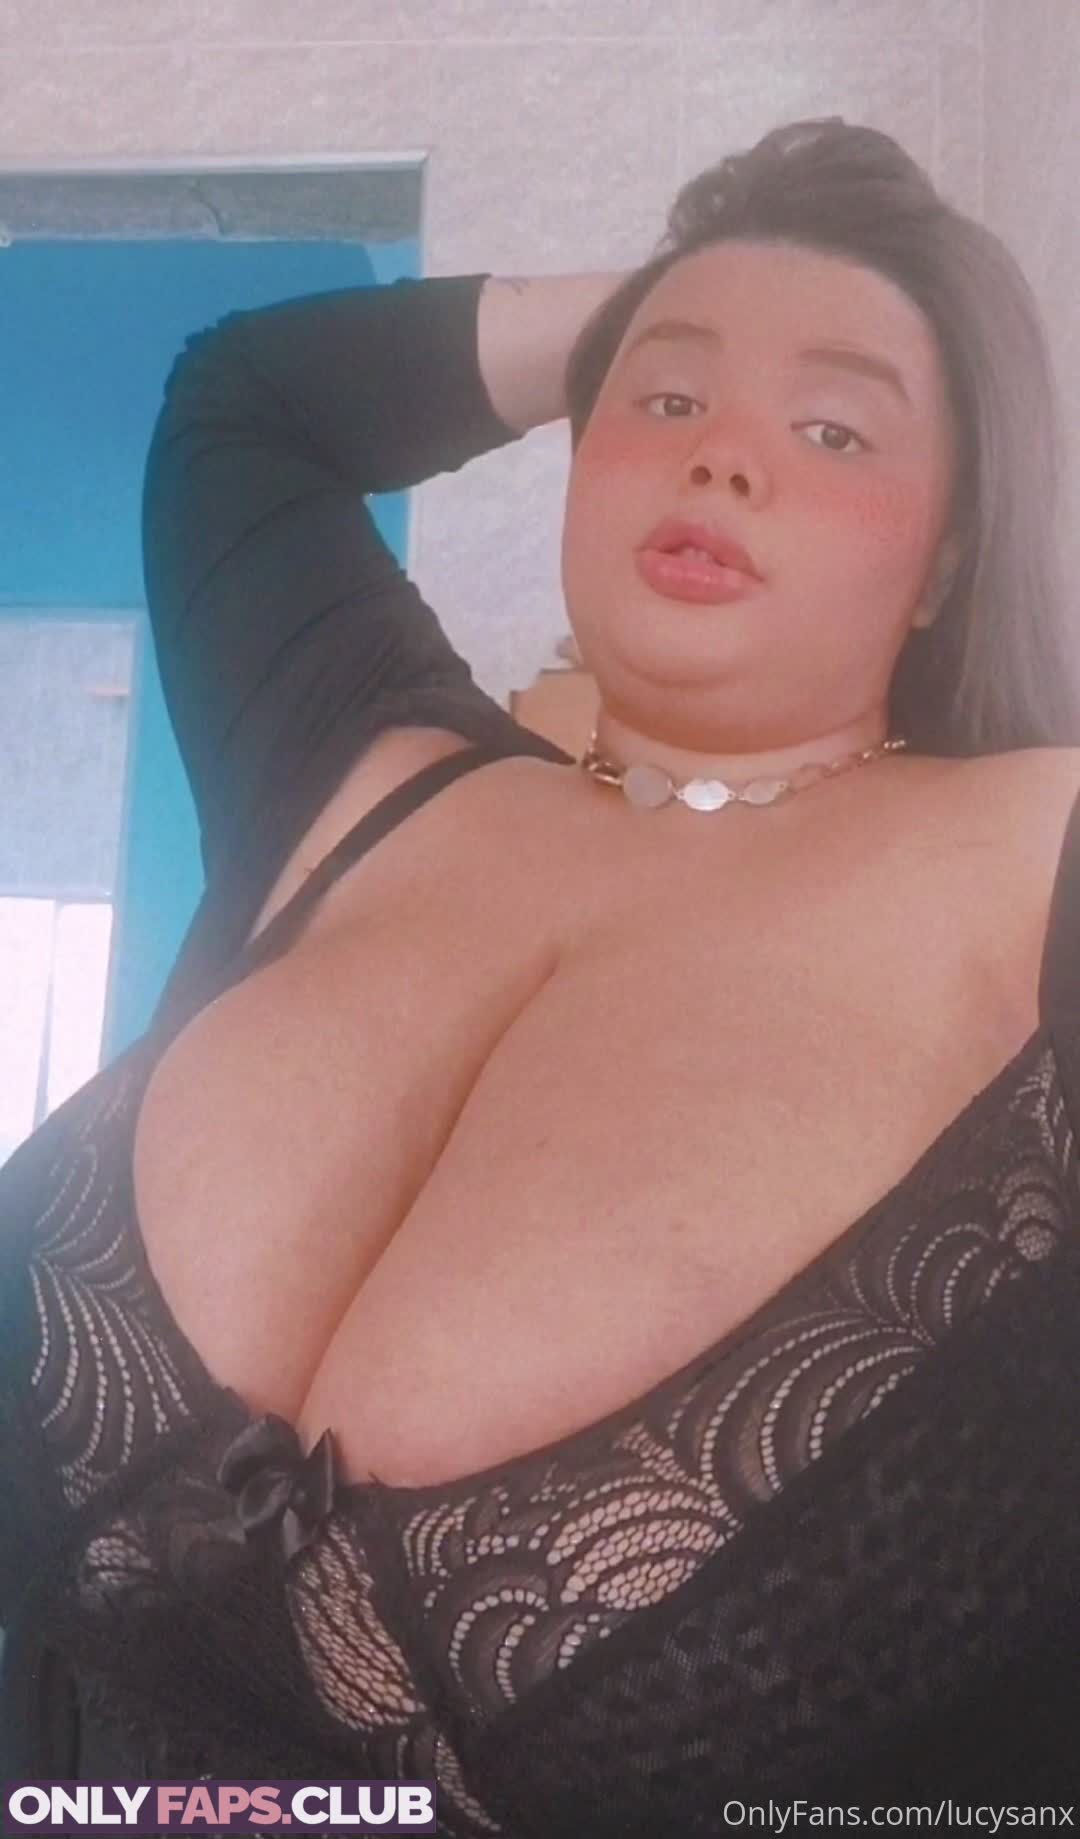 Lucysanx OnlyFans Leaks (98 Photos)